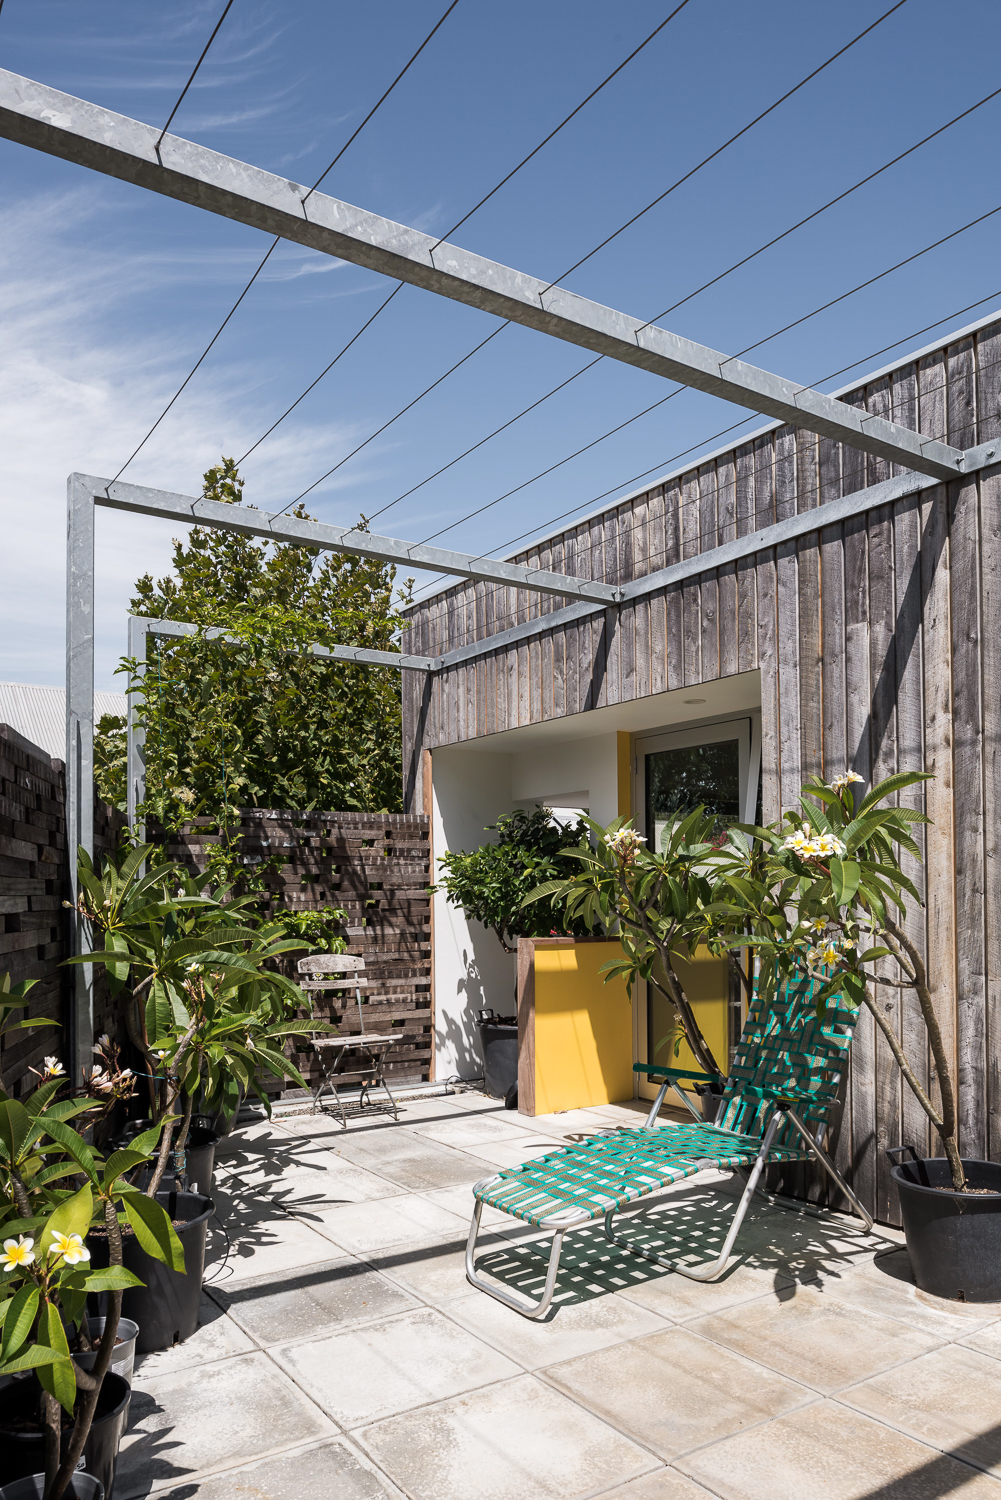 Gallery Of Silver Street House By Ehdo Architecture Local Design And Interiors South Fremantle, Wa Image 16